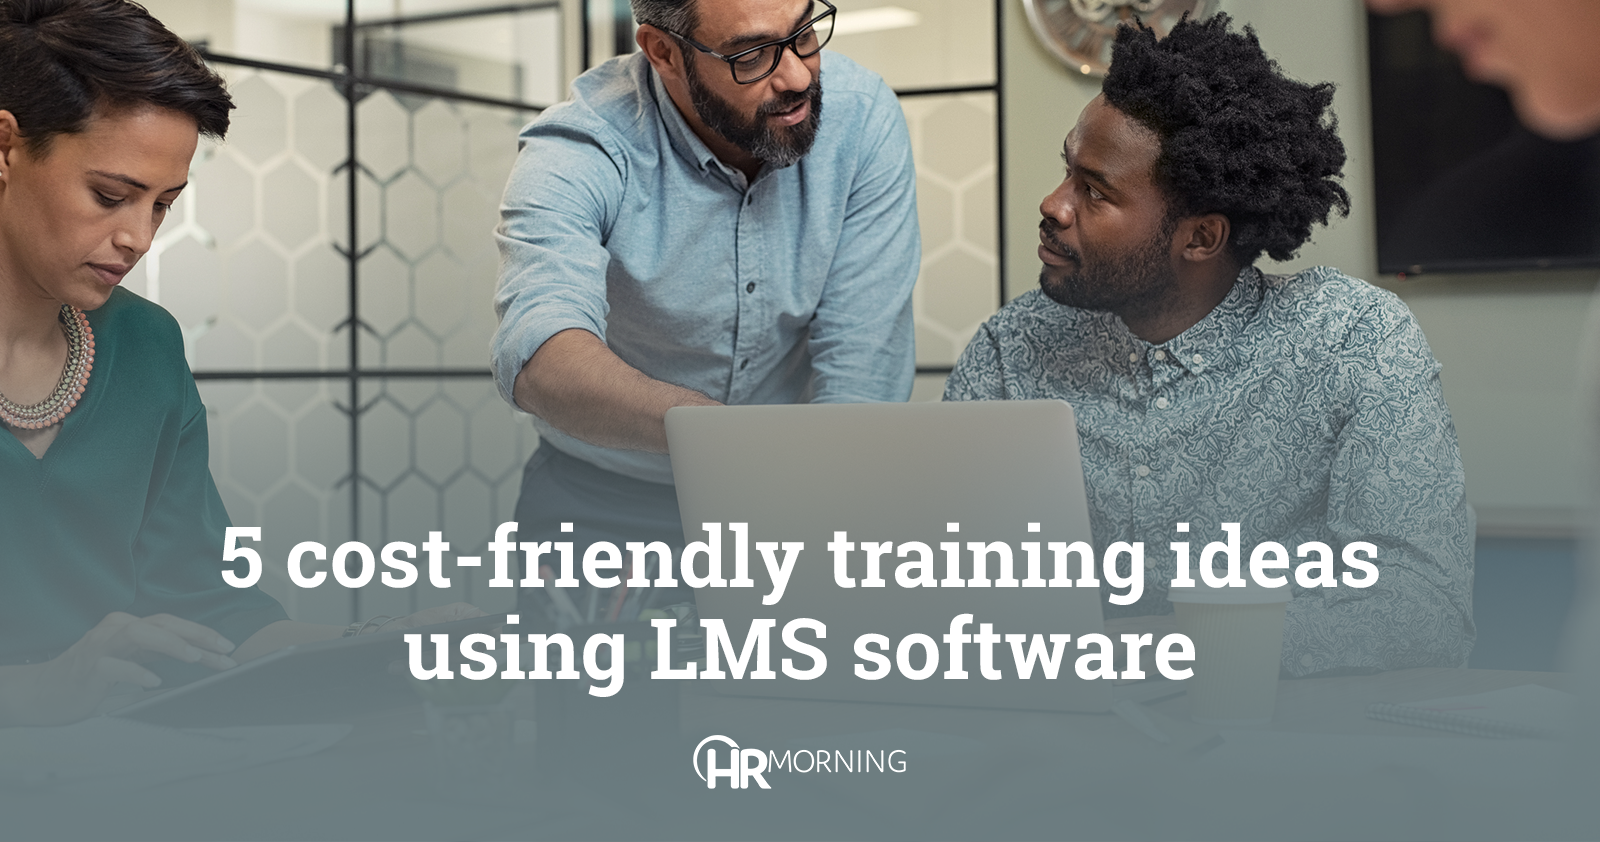 5 cost-friendly training ideas using LMS software